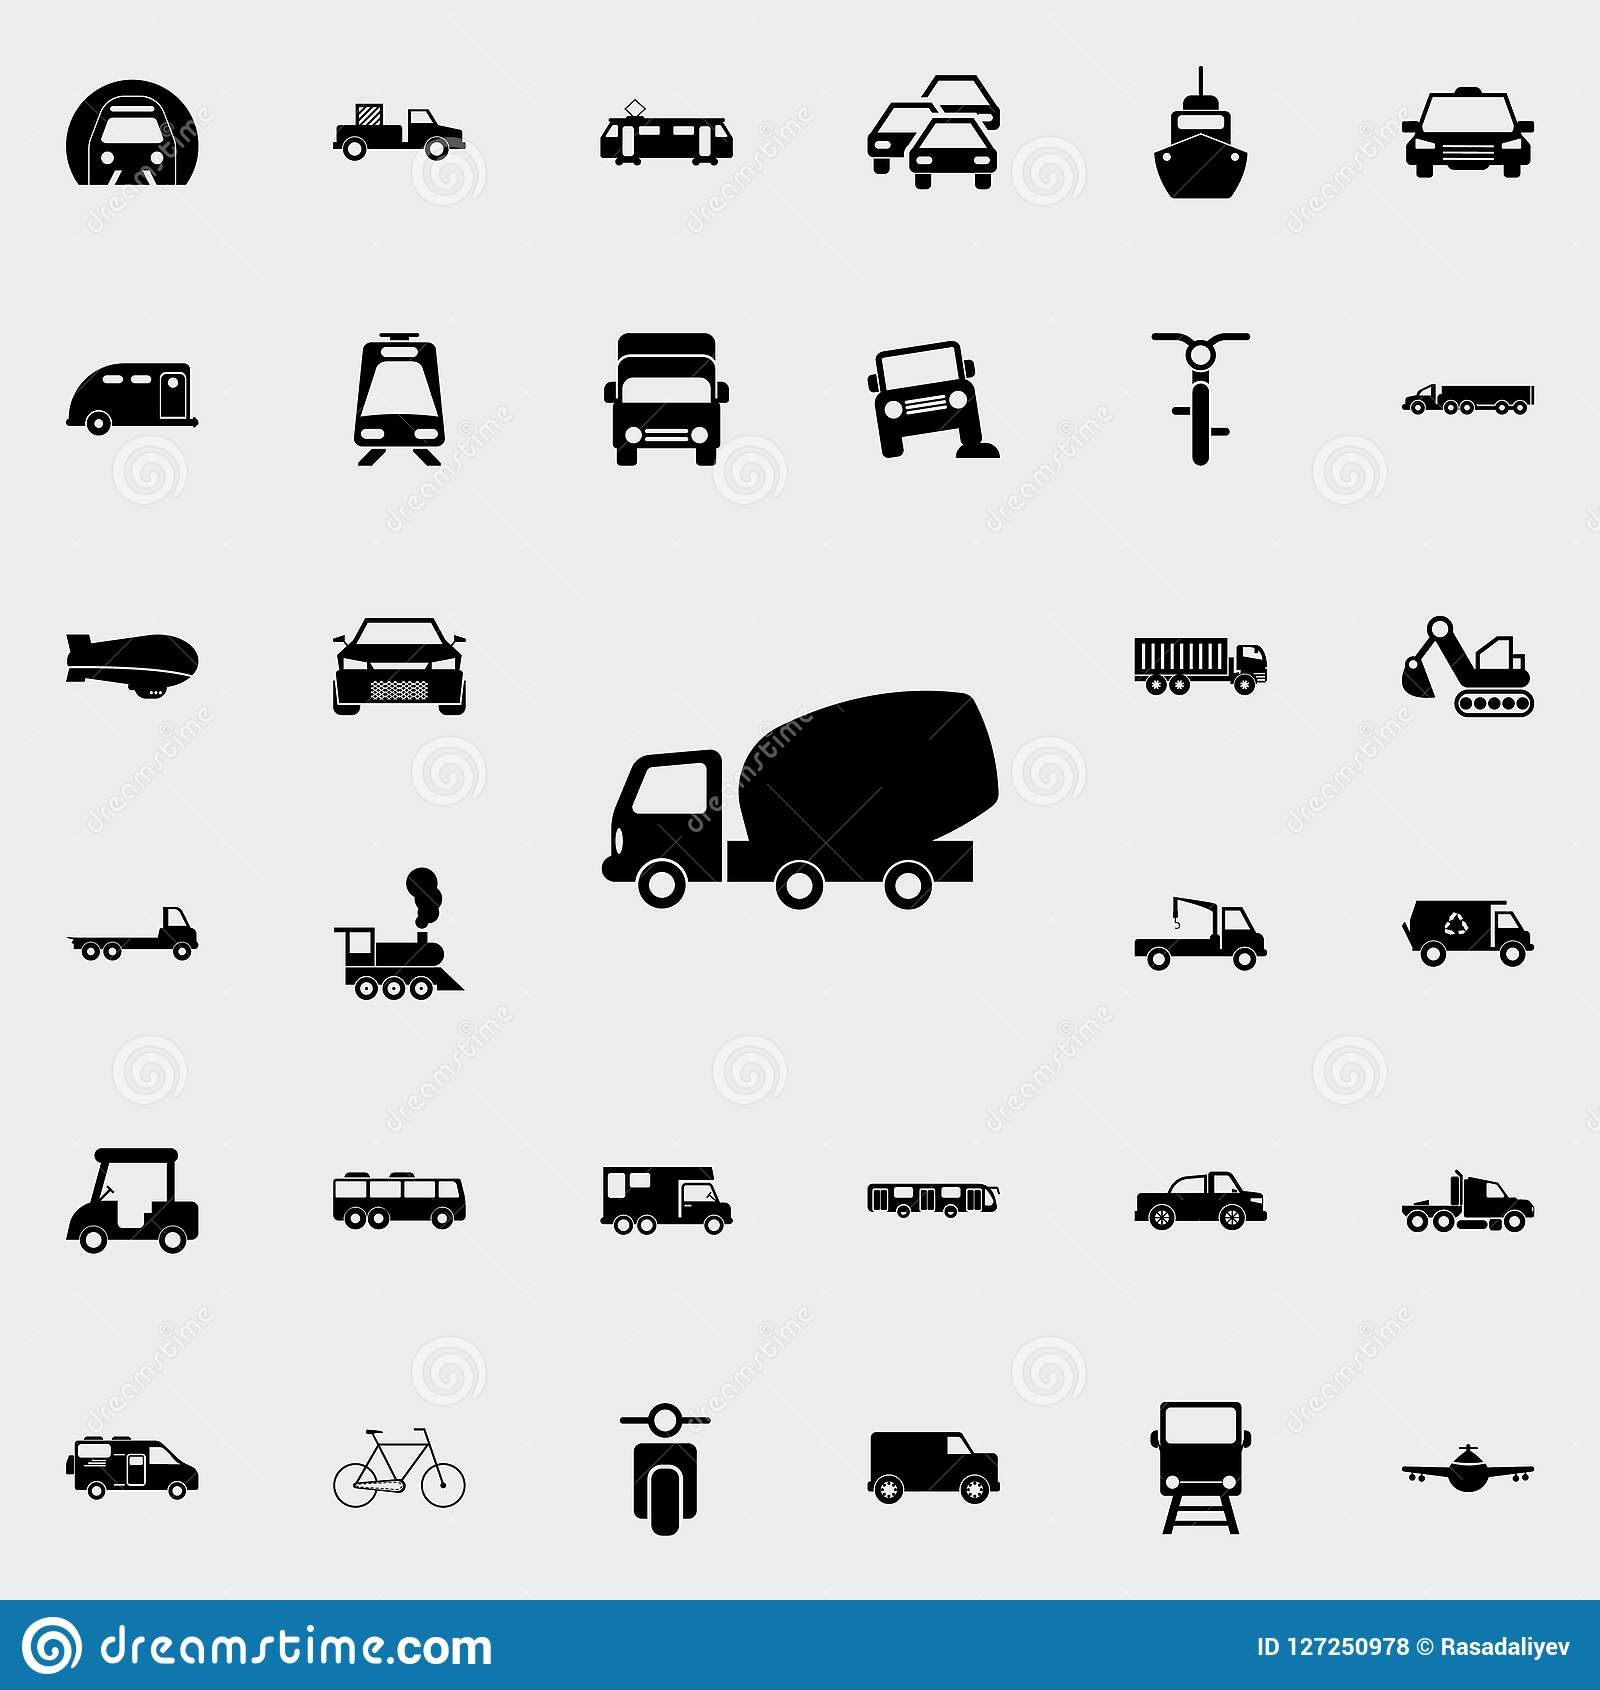 concrete mixer truck icon. transport icons universal set for web and mobile